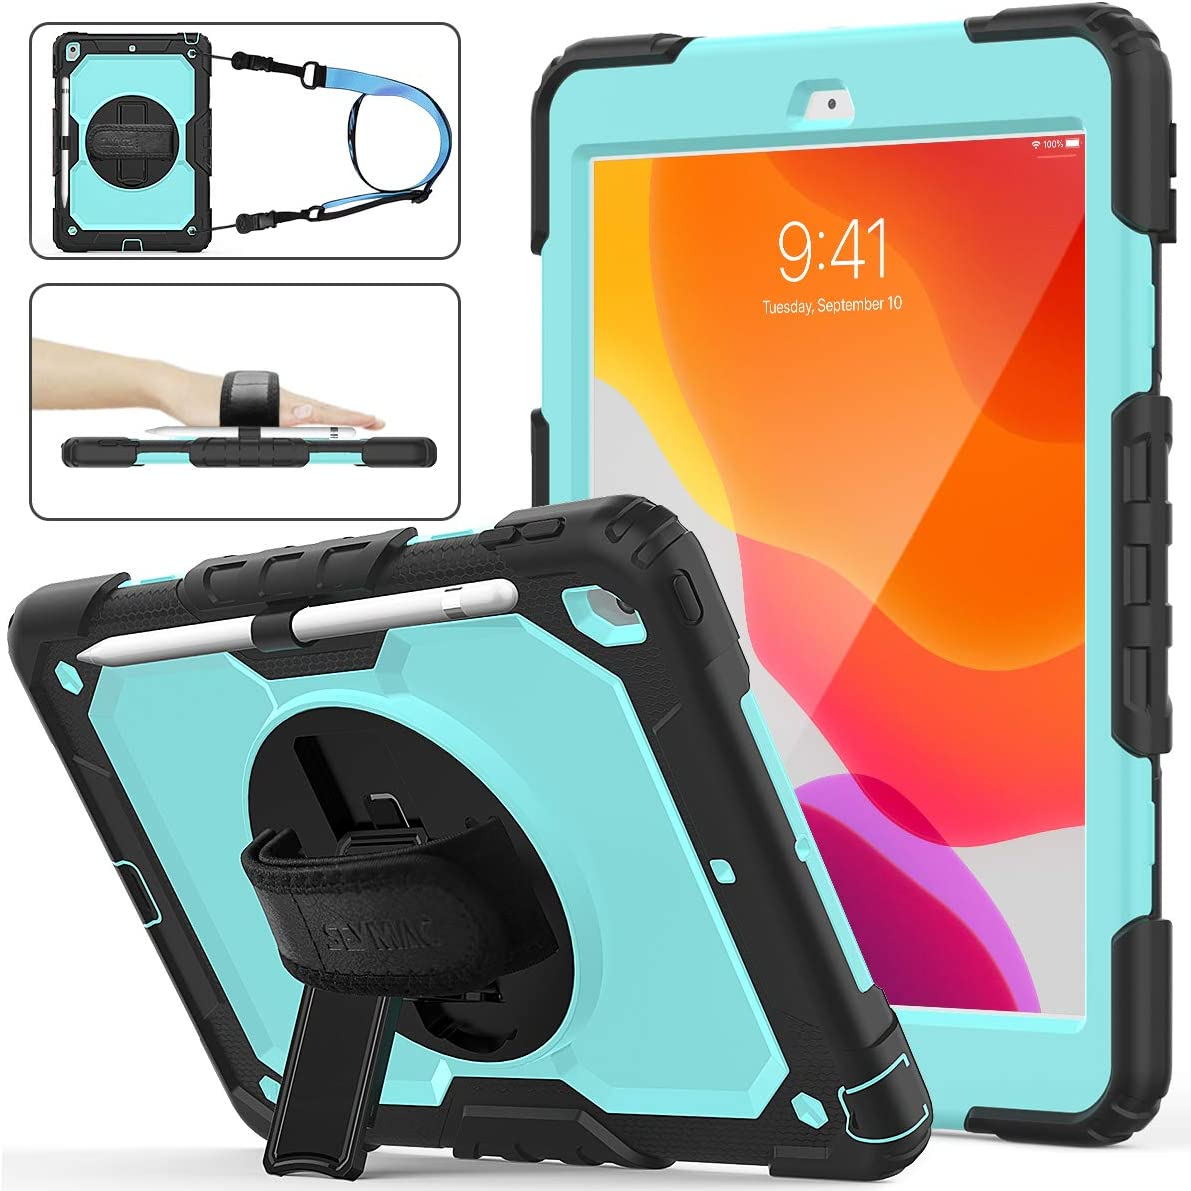 iPad 8th/7th Generation Case, New iPad 10.2 Case [Full-body] & [Shock Proof] Armor Protective Case with 360 Rotating Stand & Strap & Screen Protector for New iPad 8th/7th Gen 2020/2019 (Skyblue+Black)